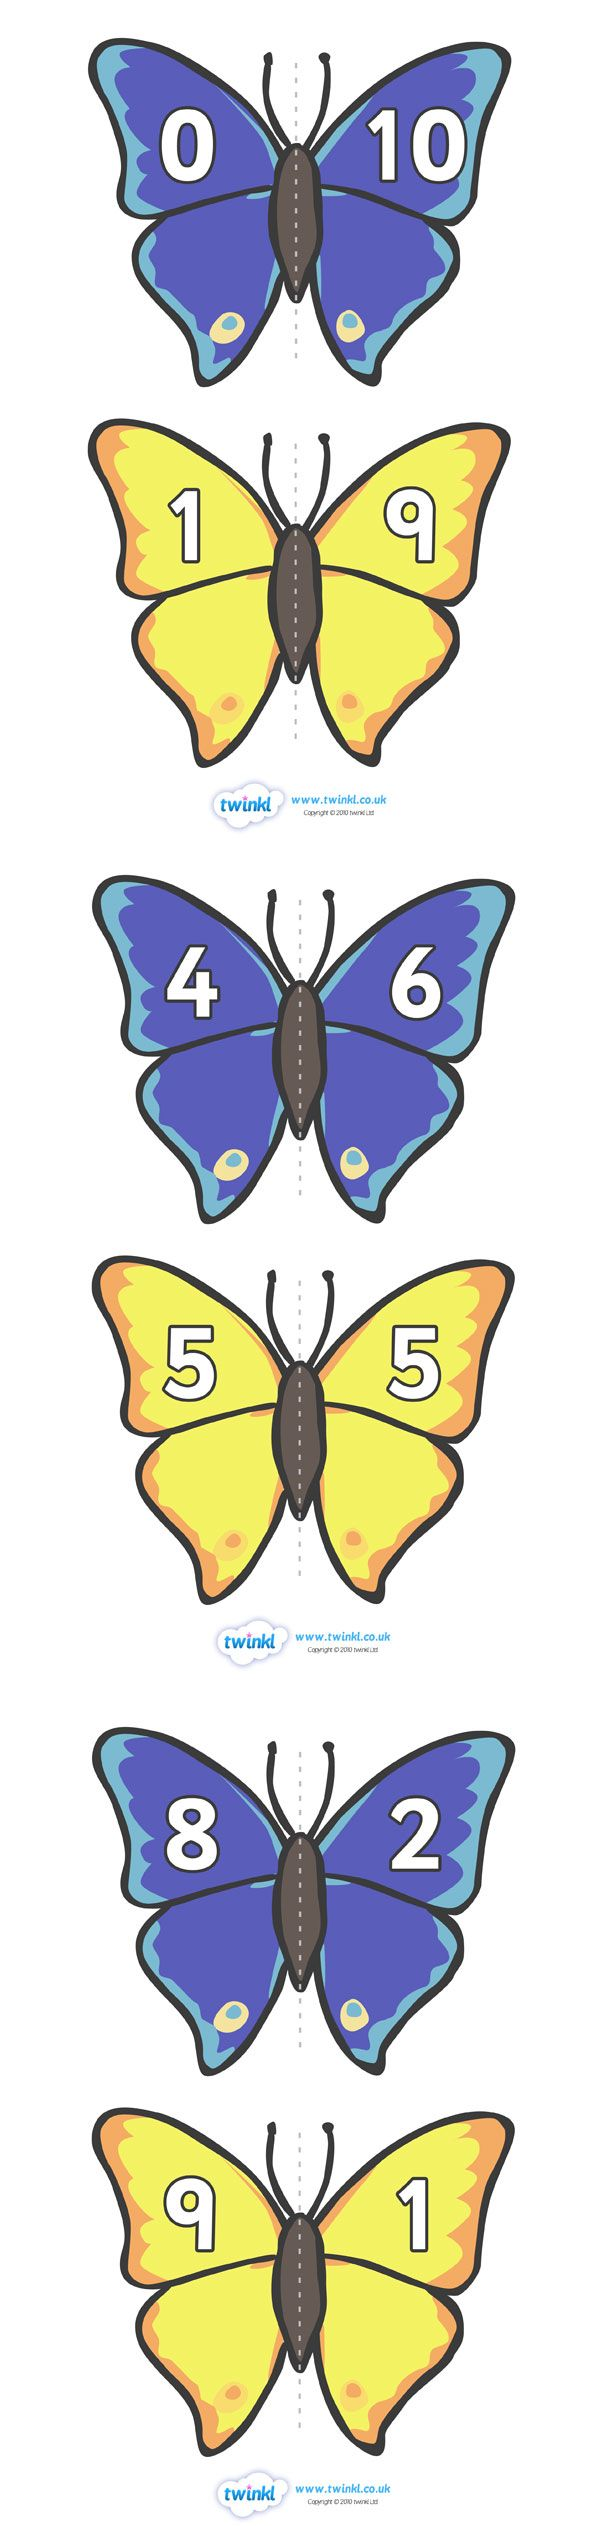 Number Bonds to 10 Matching Cards (Butterflies) - Pop over to our site at www.twinkl.co.uk and check out our lovely Numeracy primary teaching resources! numeracy, maths, number, butterflies #Numeracy #Numeracy_Resources